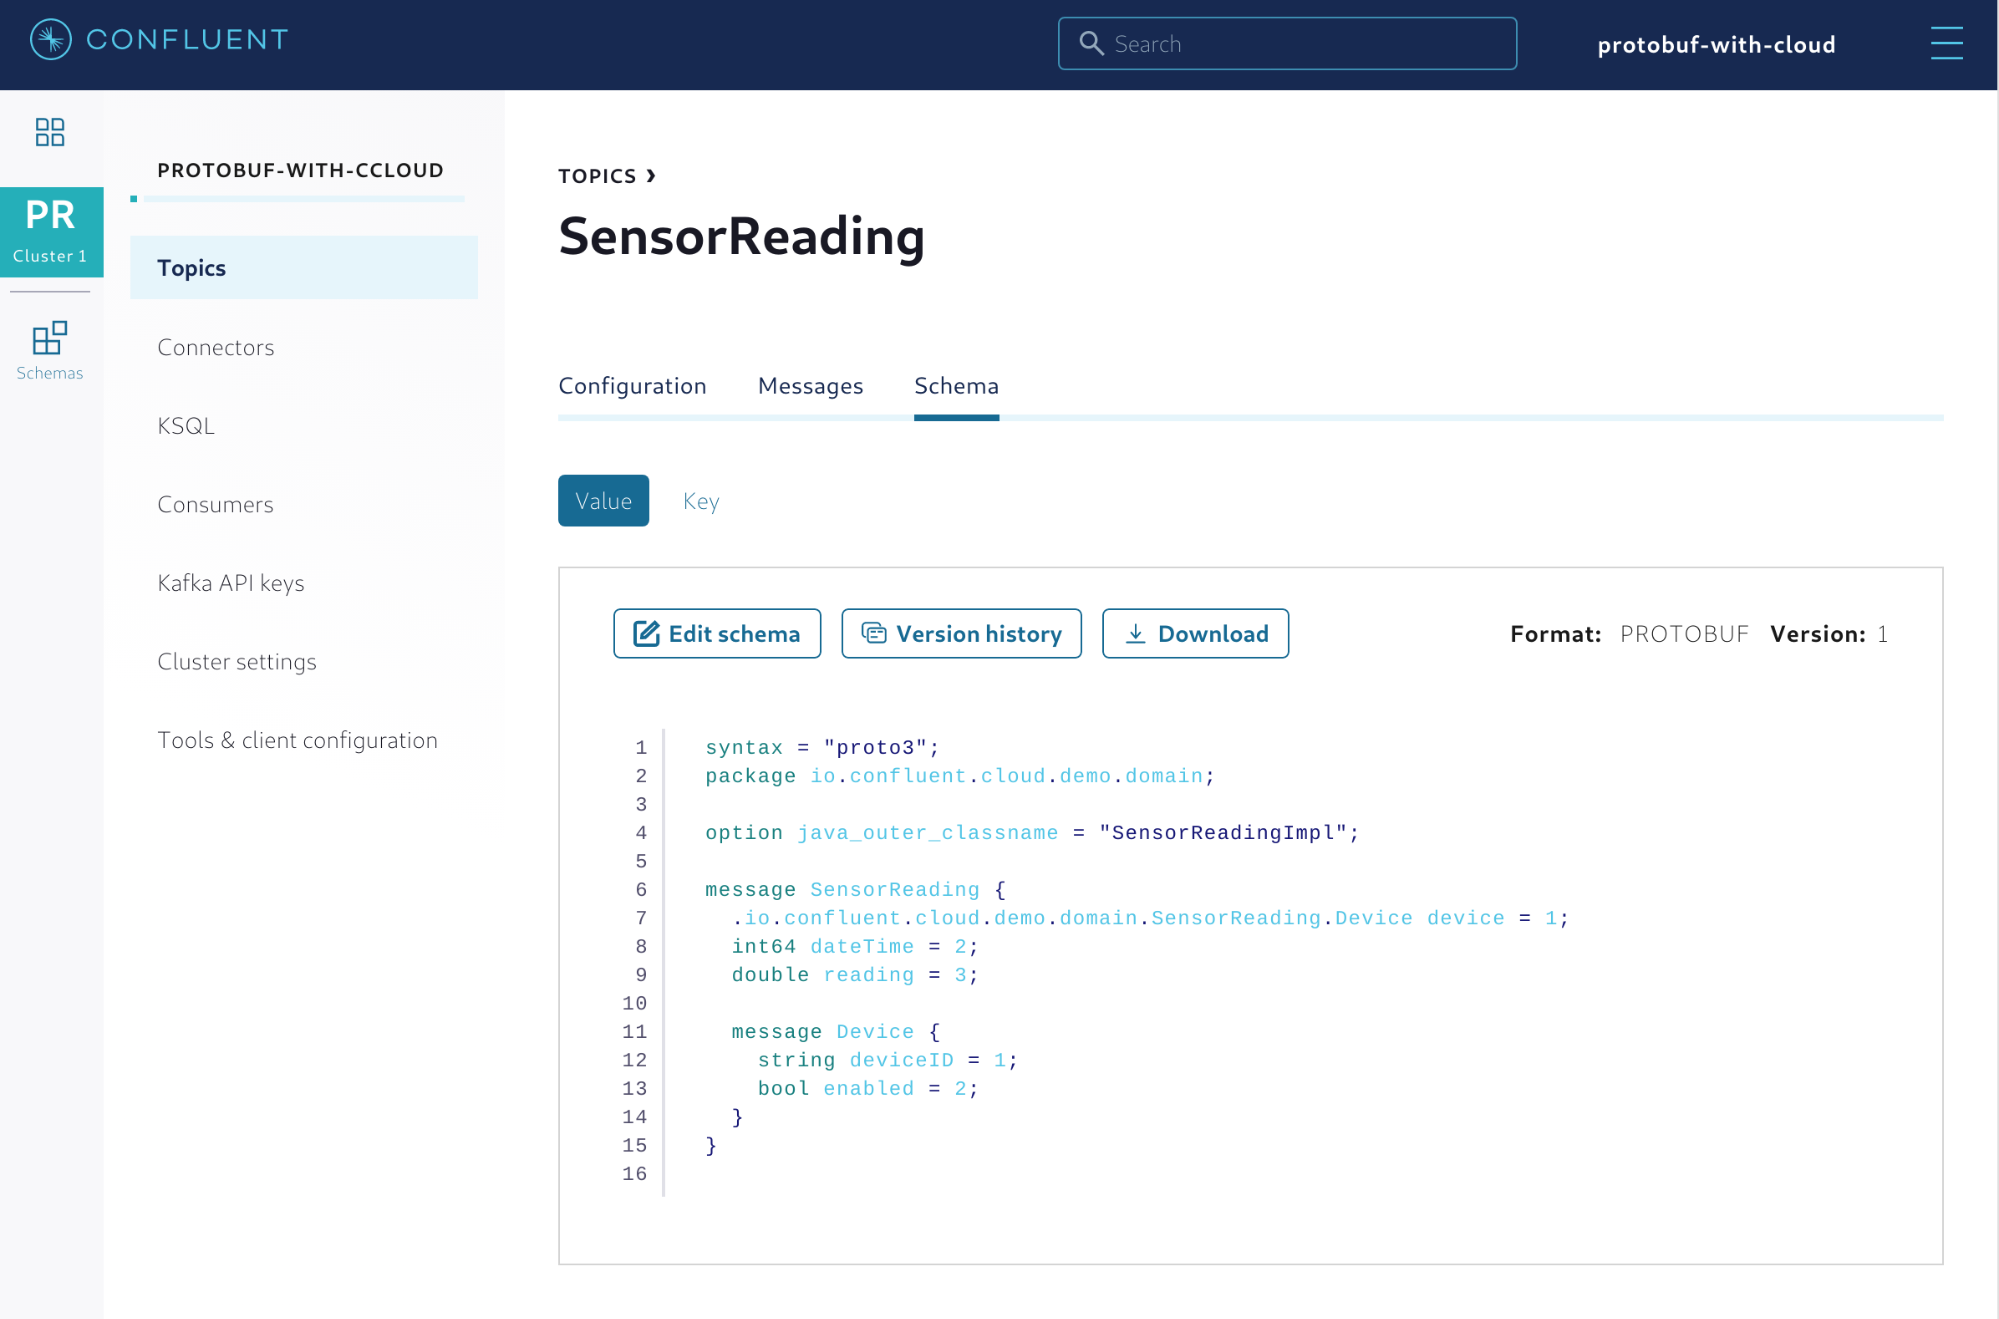 Protobuf schema properly registered with Confluent Cloud